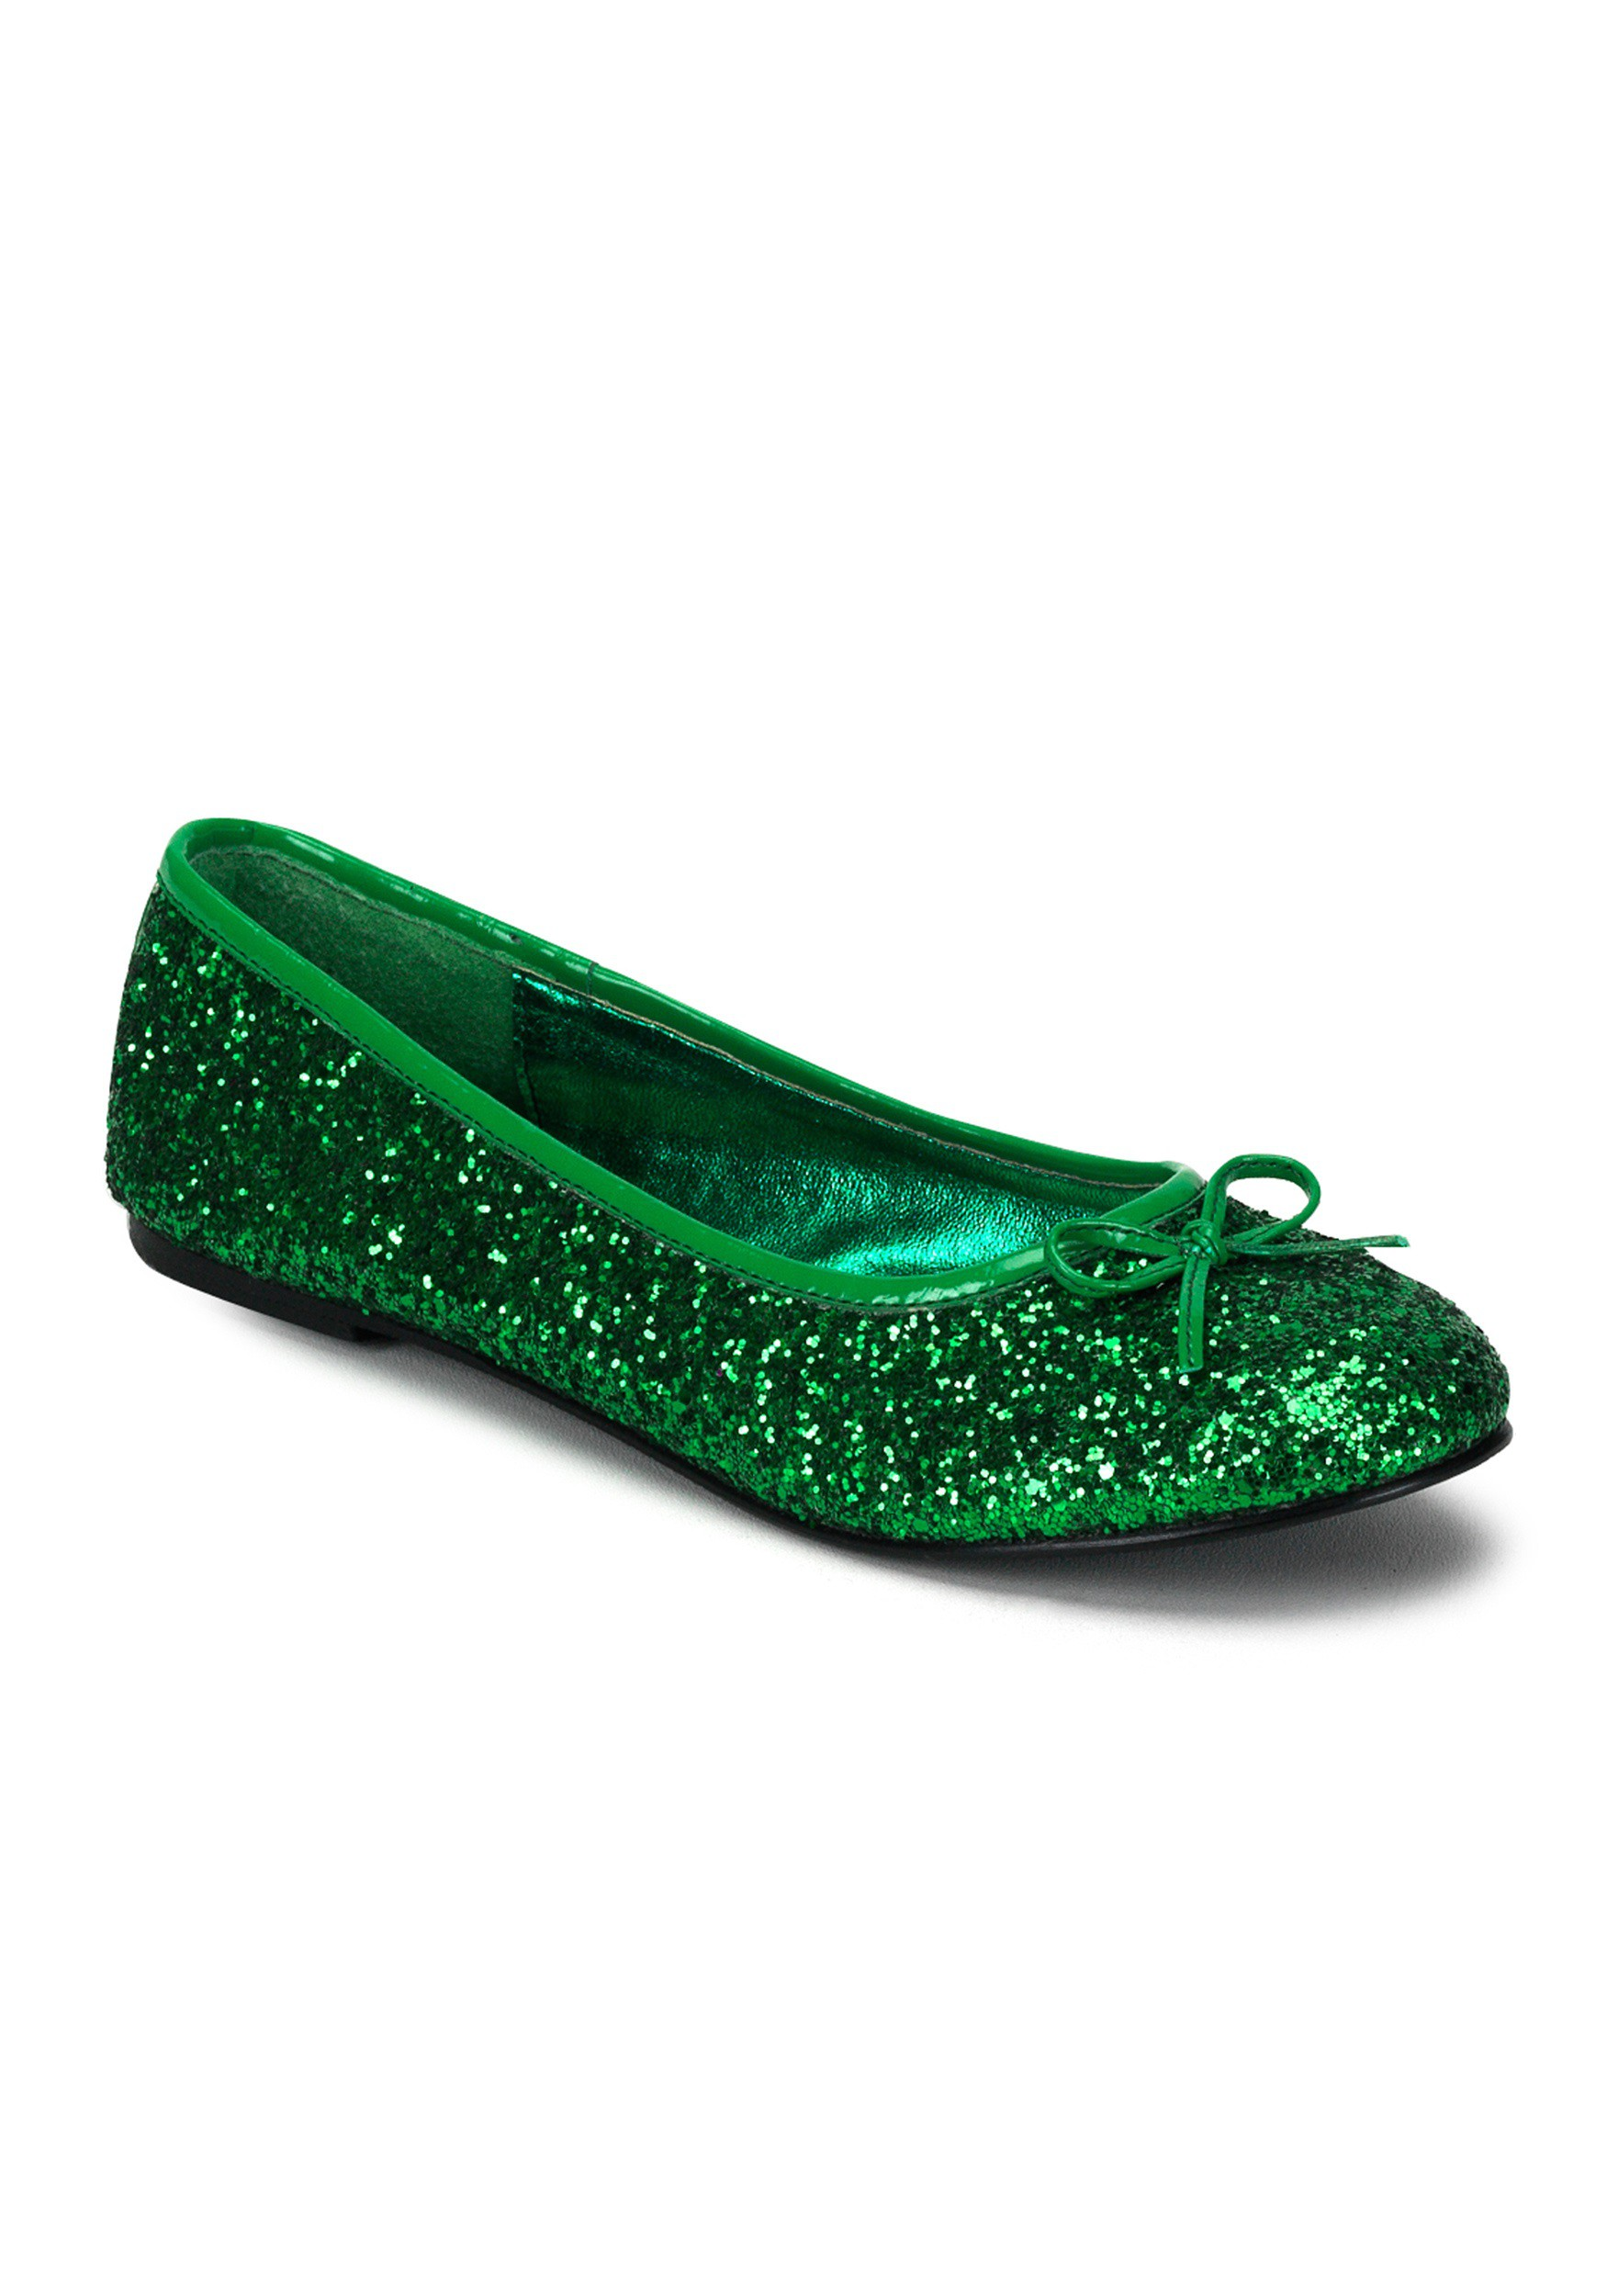 Adult Kelly Green Glitter Flat s 3edb05654a